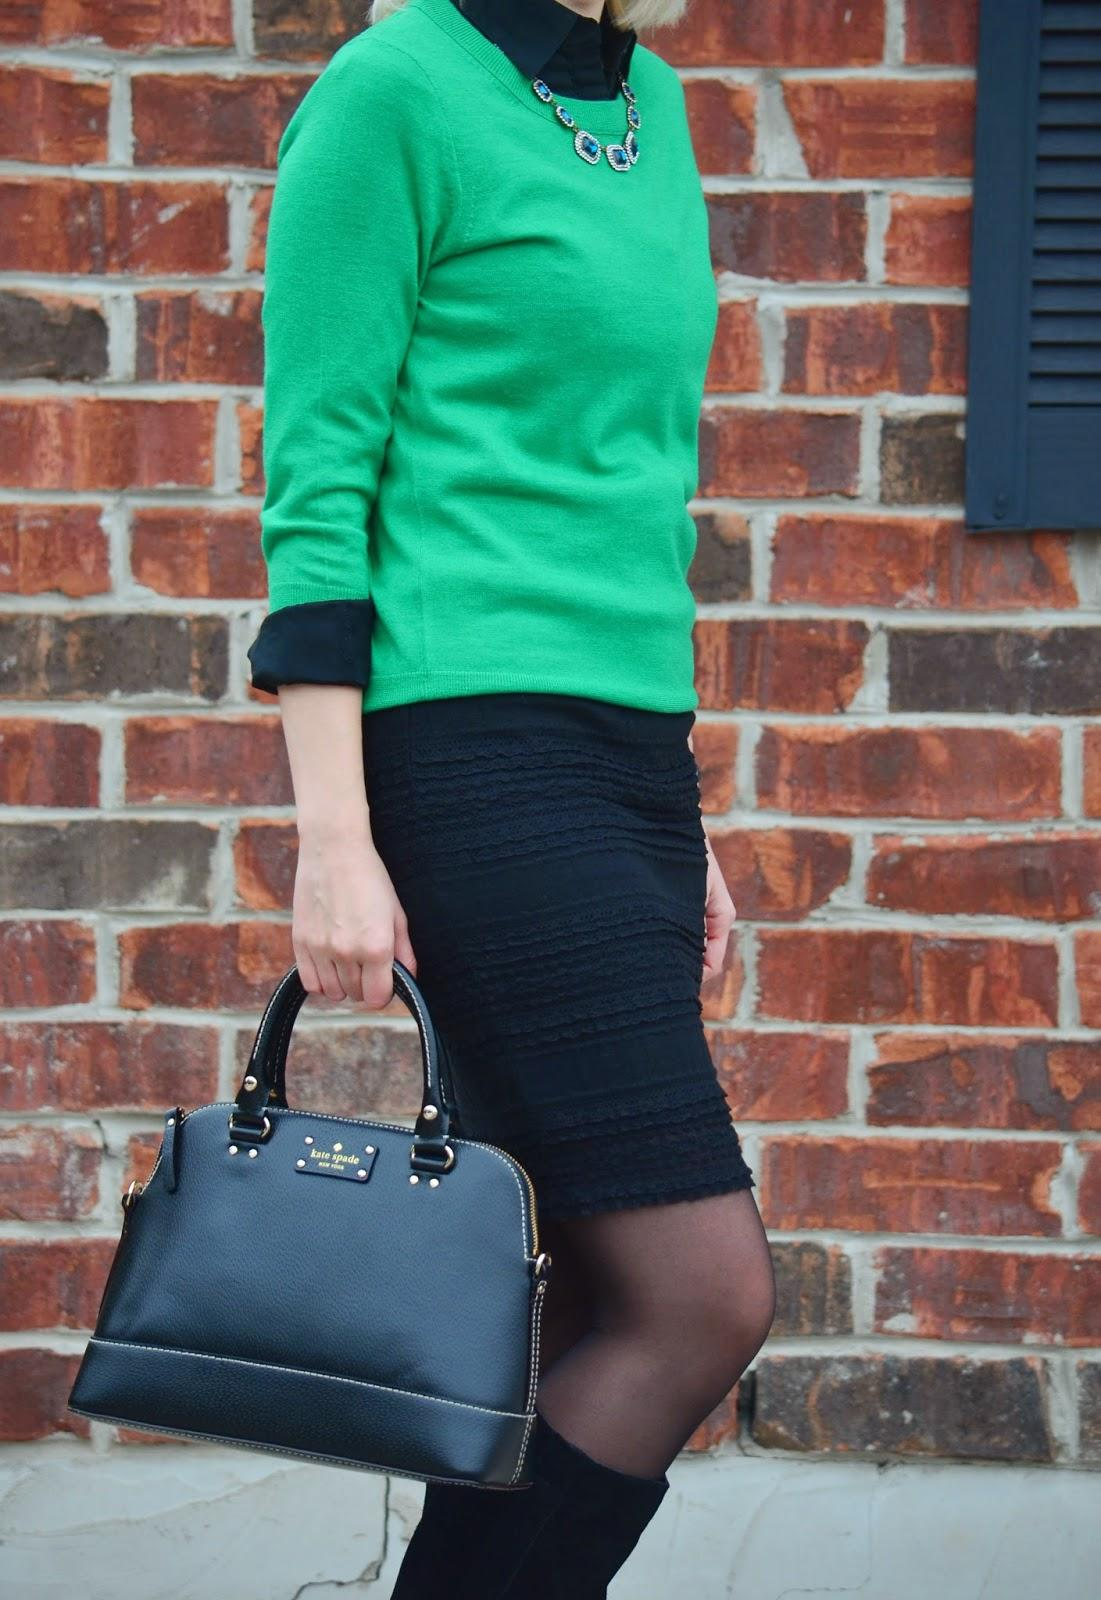 Style, office style, office wear, forever21, Forever21 necklace, Esprit, lace skirt, Asos, Kate Spade, lace midi skirt, green top, office wear, green and black, green black, green top style, midi skirt for work